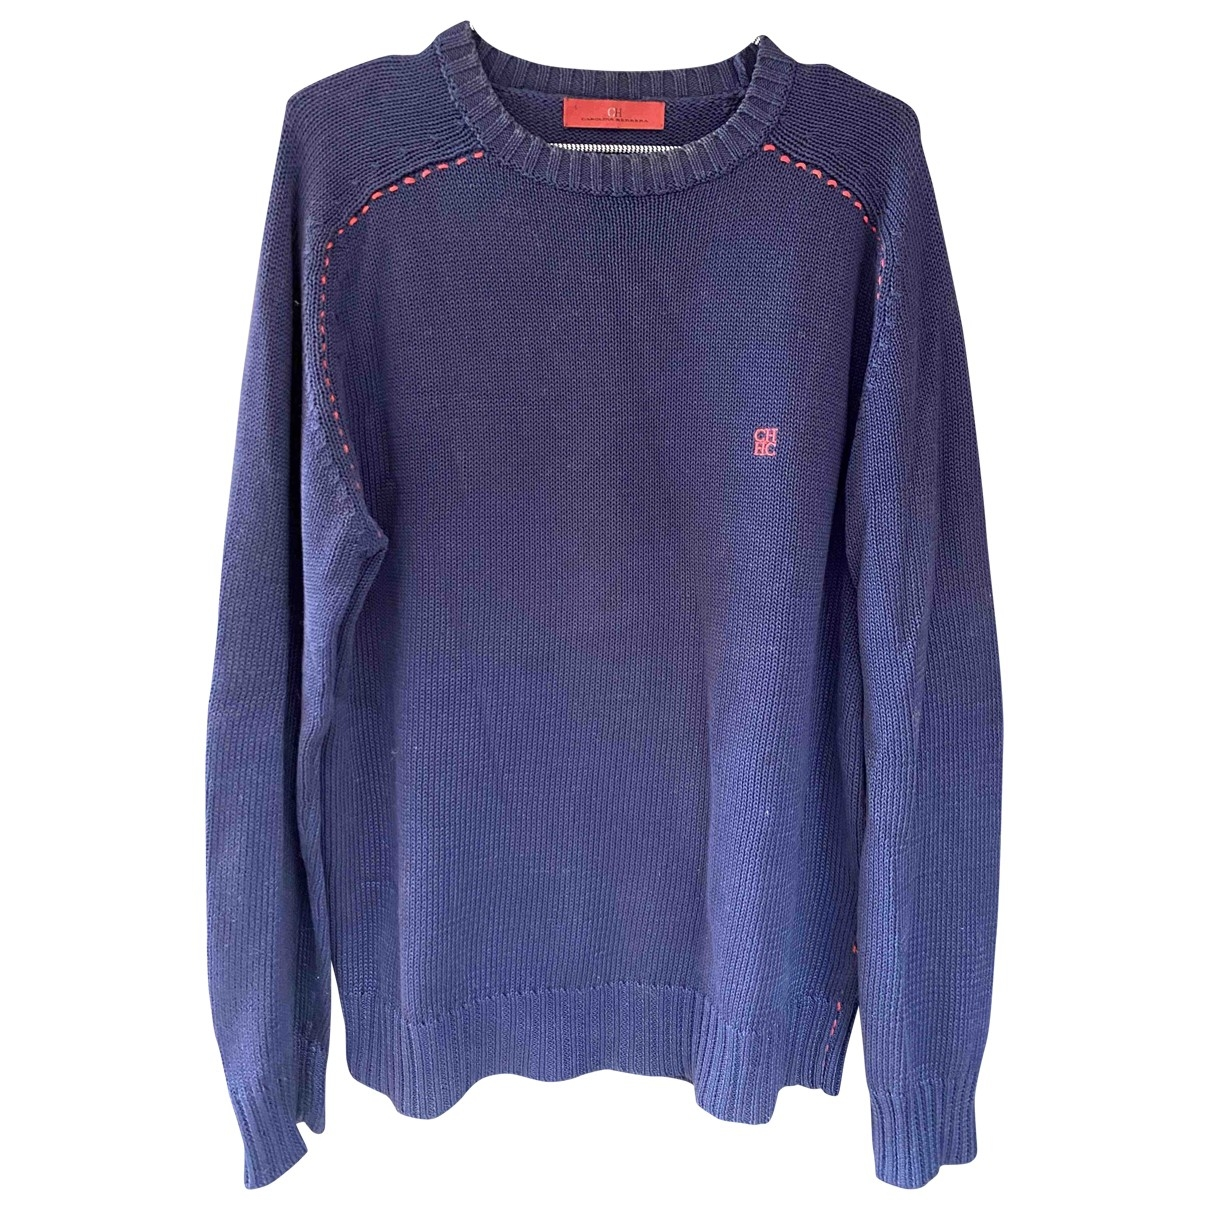 Carolina Herrera \N Blue Cotton Knitwear & Sweatshirts for Men S International